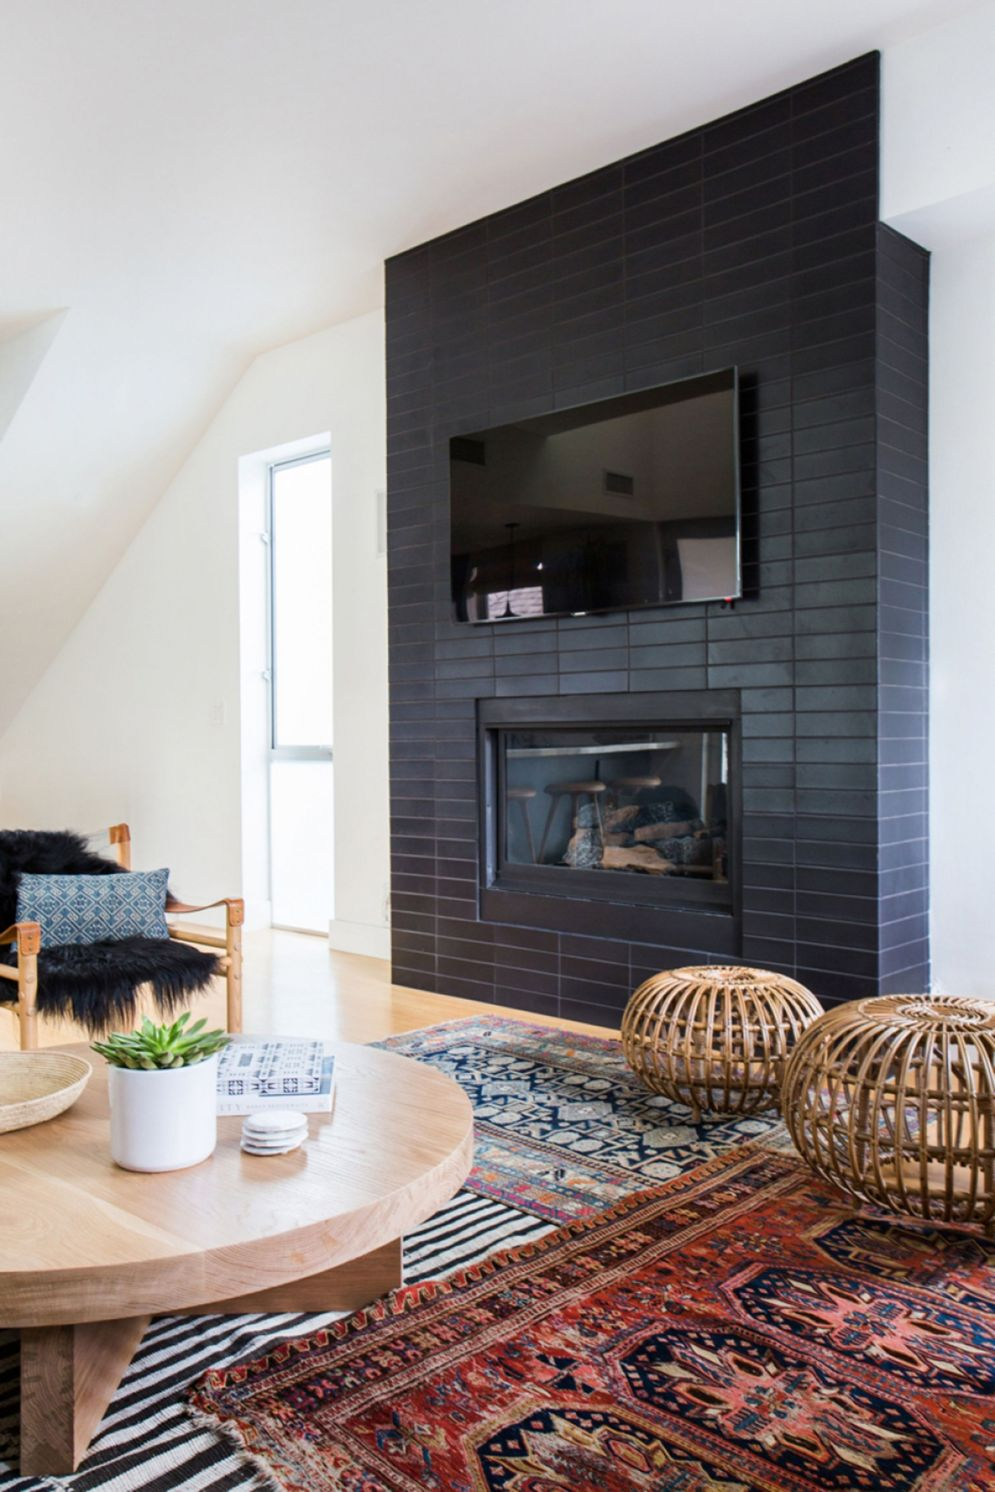 Amazing interior design showing enclosed log burning fireplace along with savvy TV wall Image 11